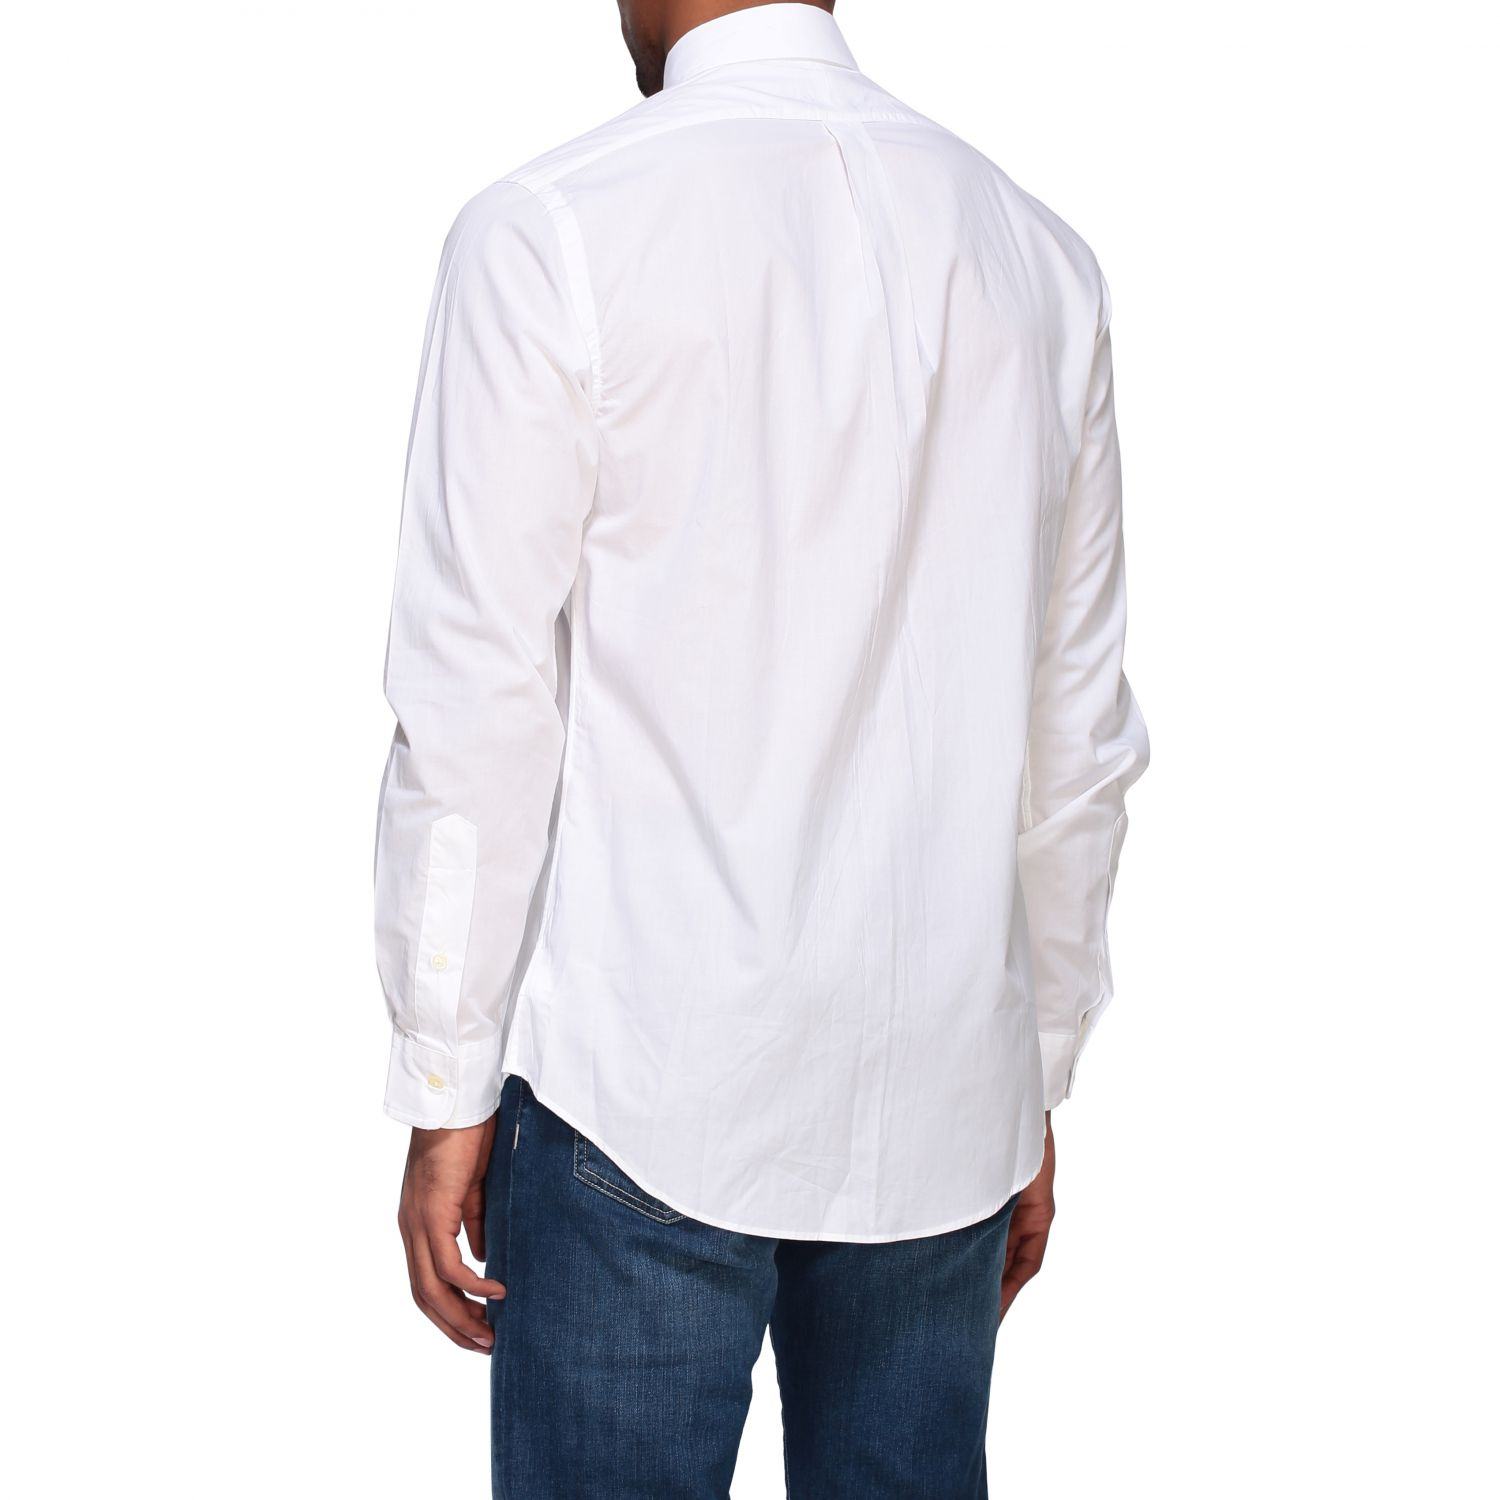 Camicia Polo Ralph Lauren in popeline con collo button down bianco 3